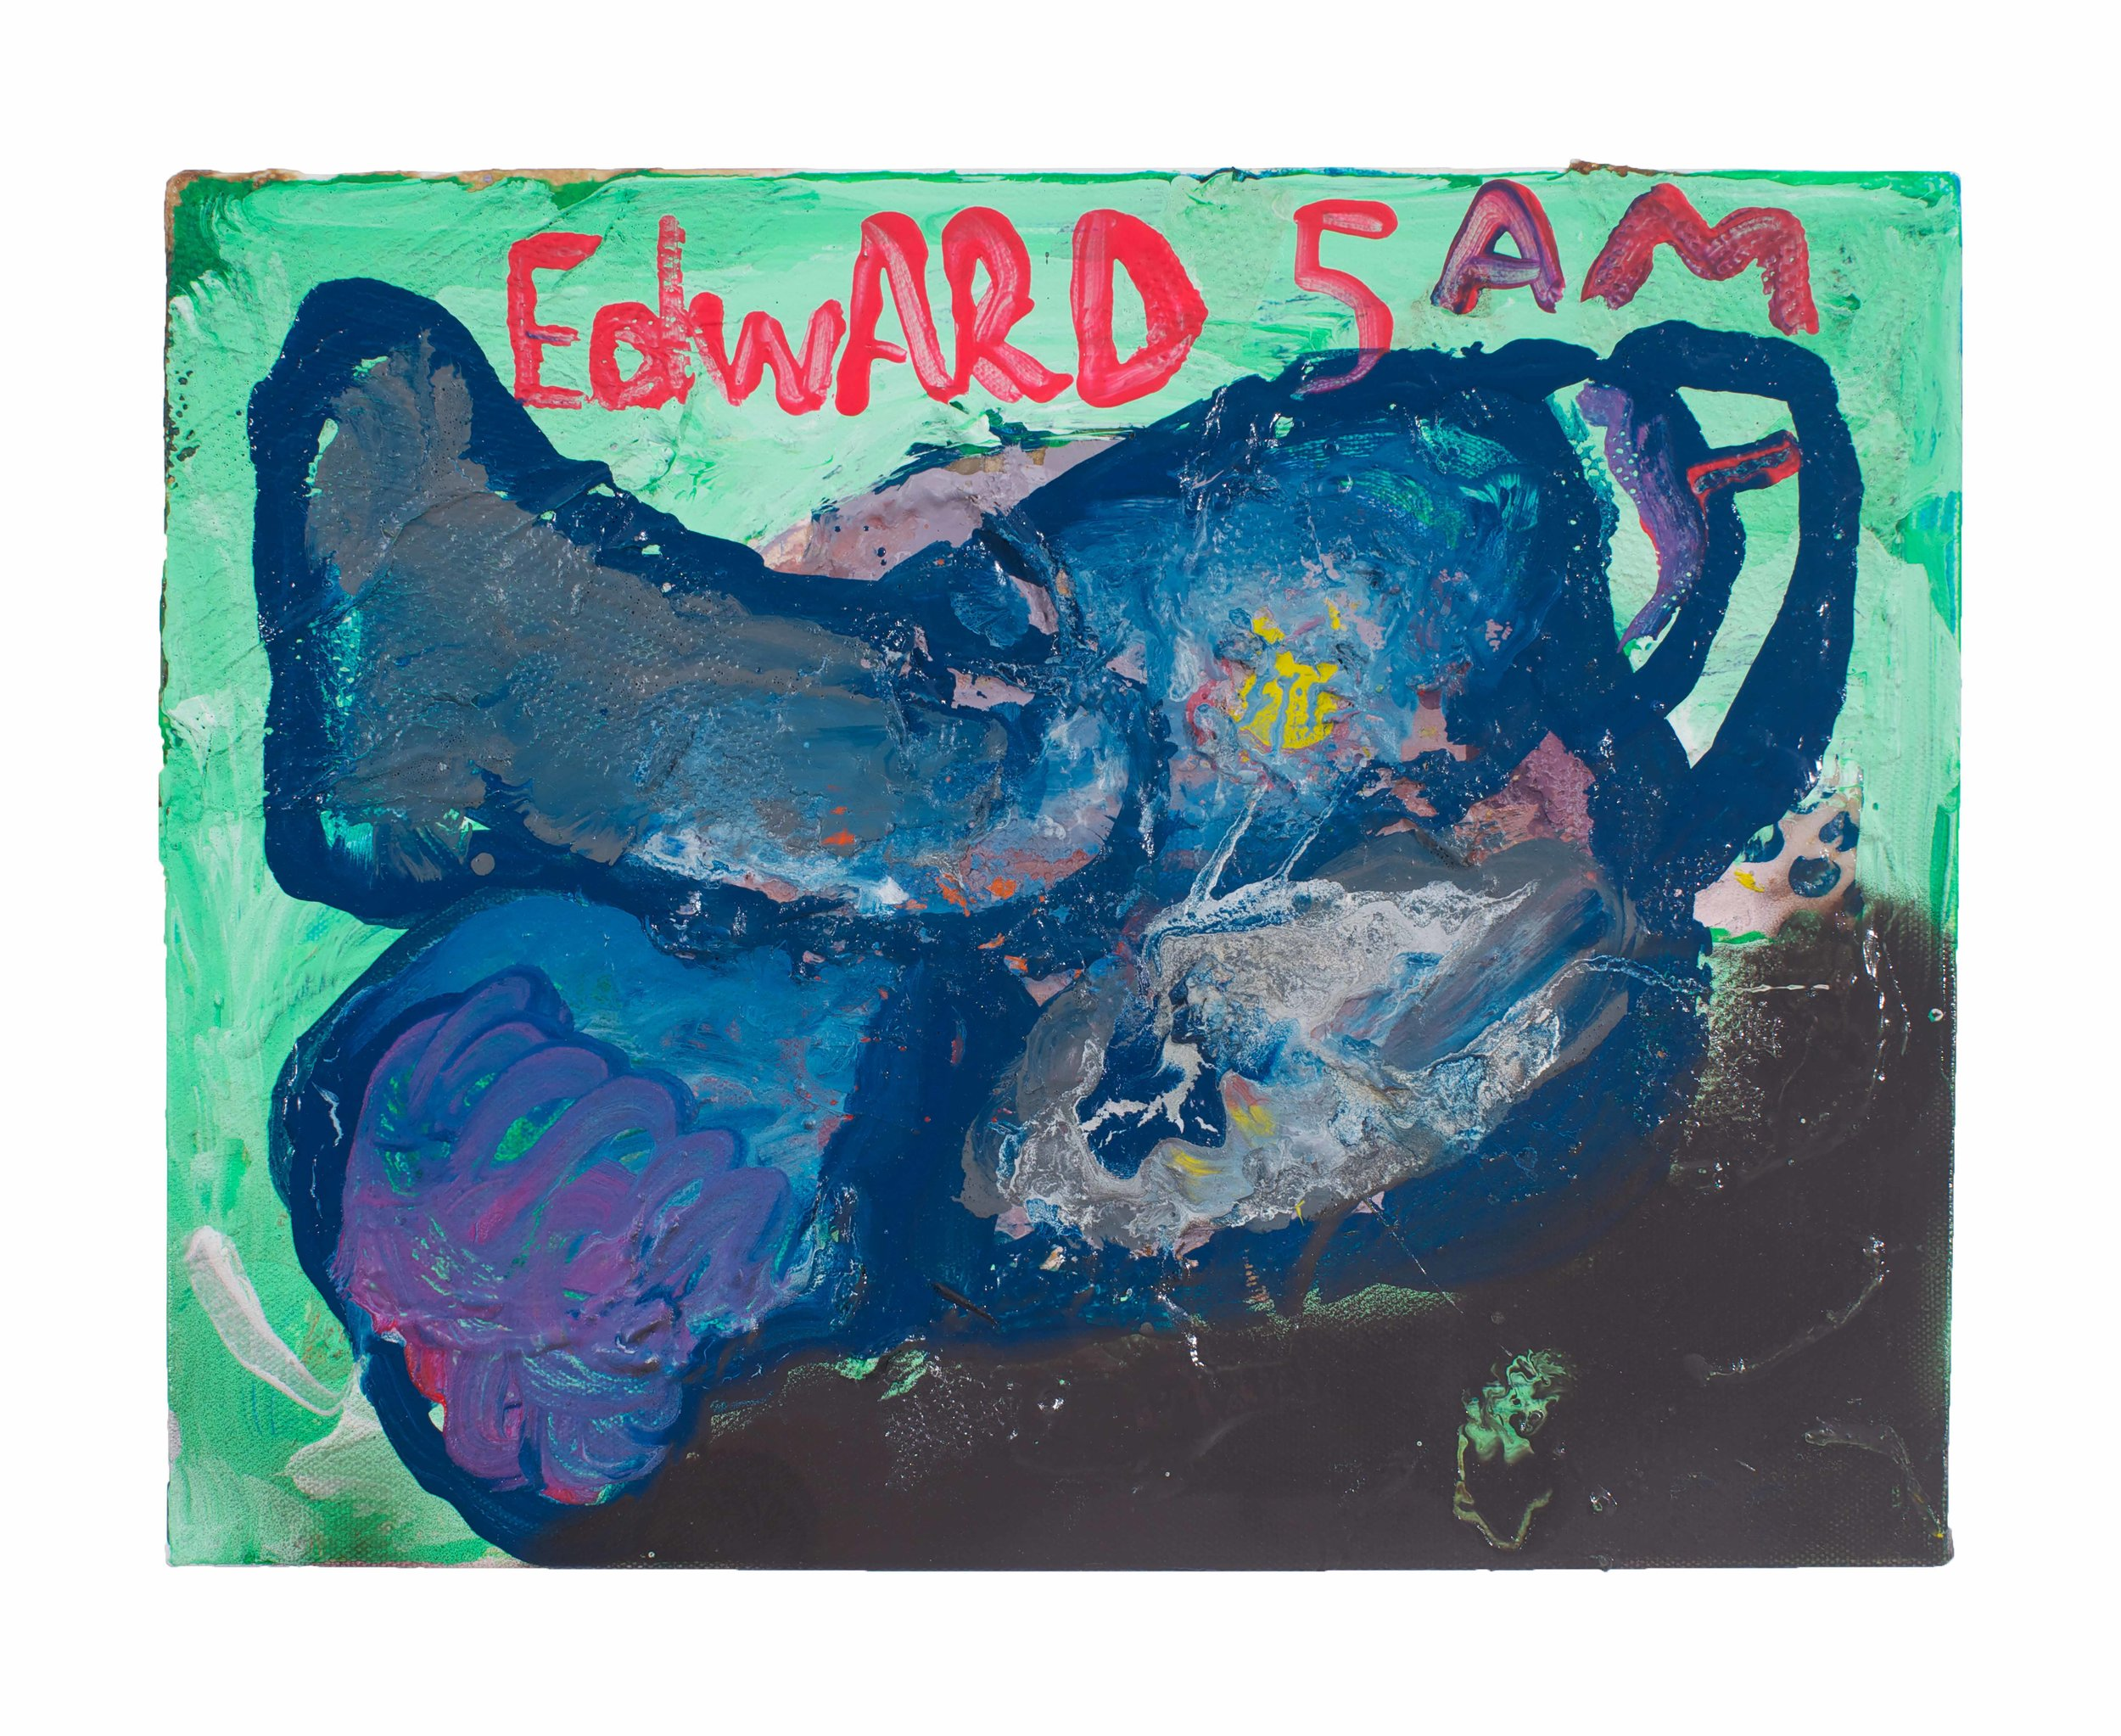 Drew Beattie and Ben Shepard  Edward 5 AM  2014 acrylic on canvas 11 x 14 inches